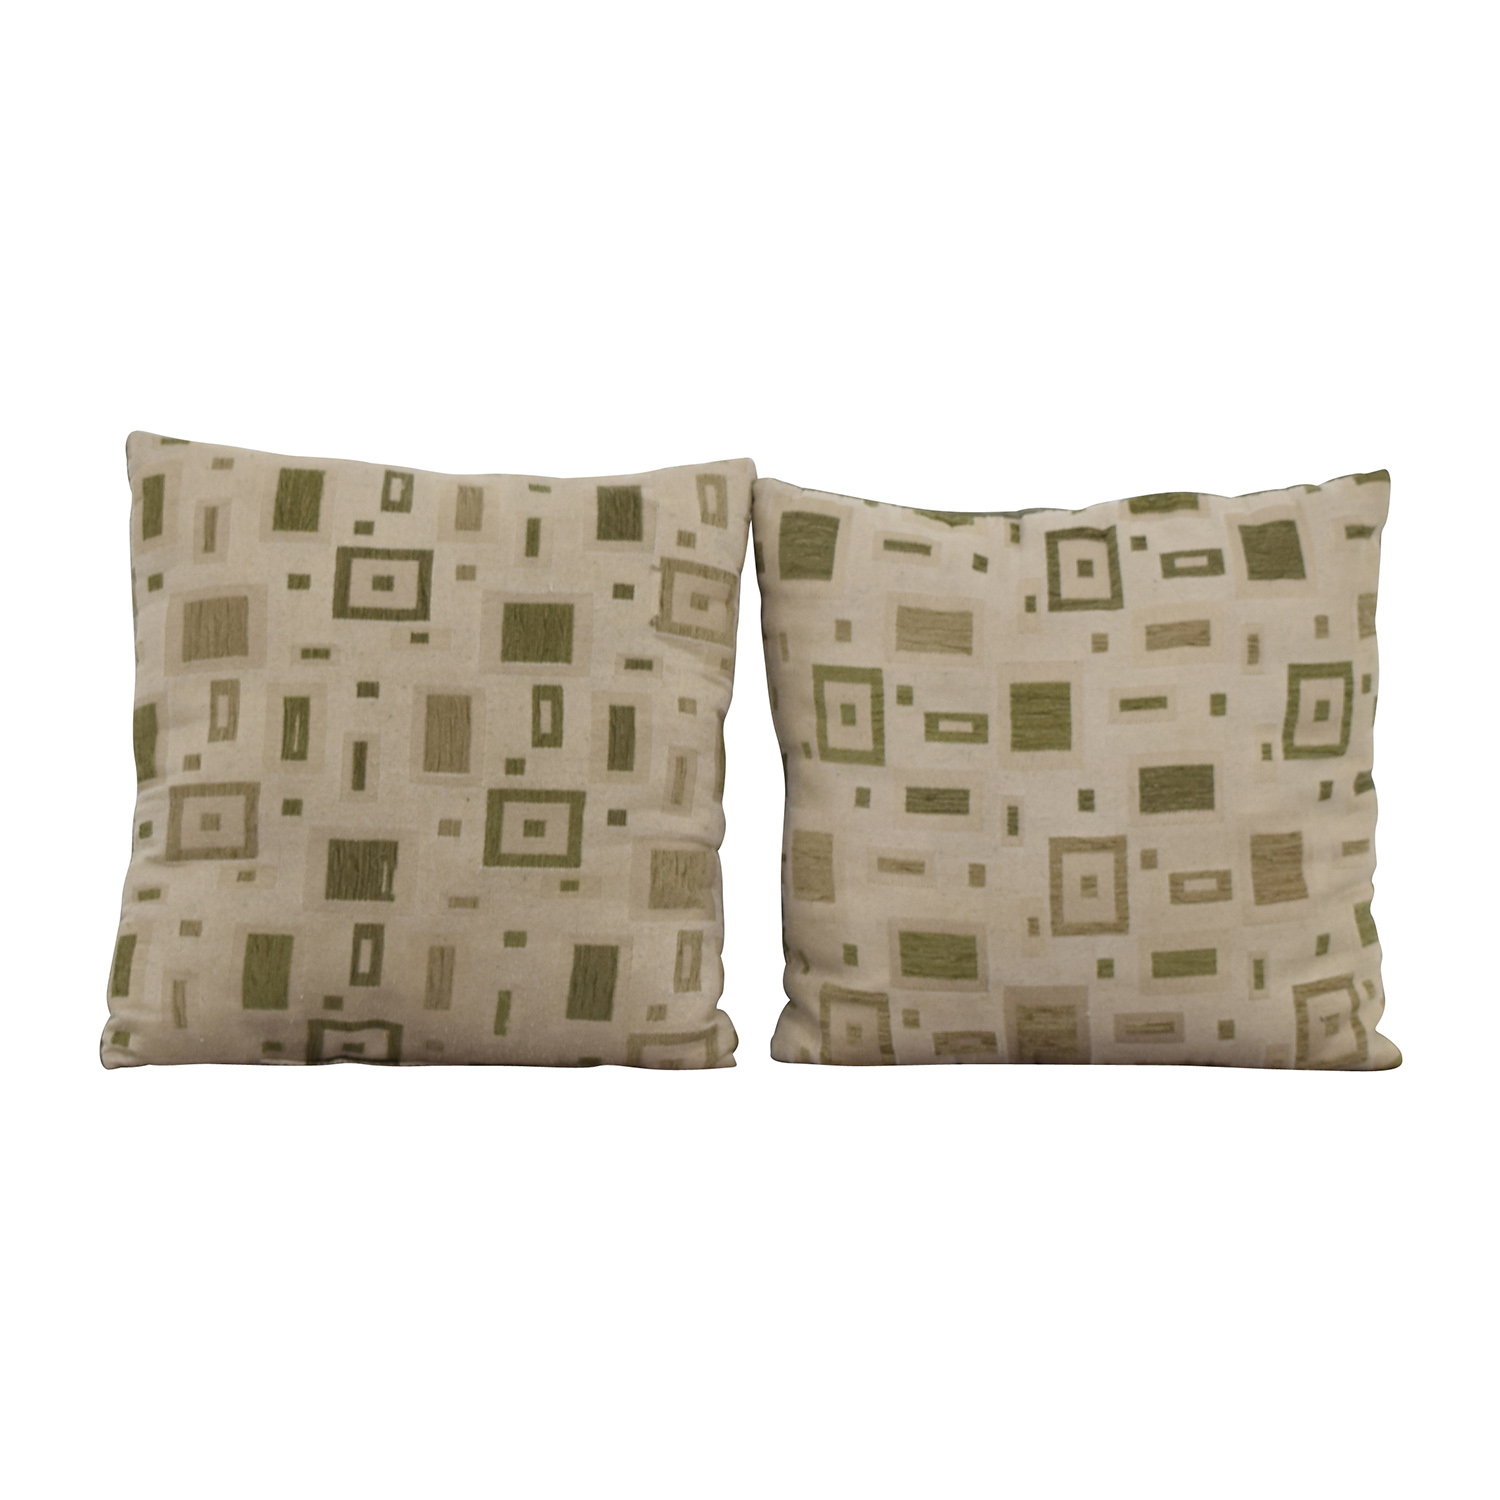 Multi-colored Square Design Tan and Green Toss Pillows second hand